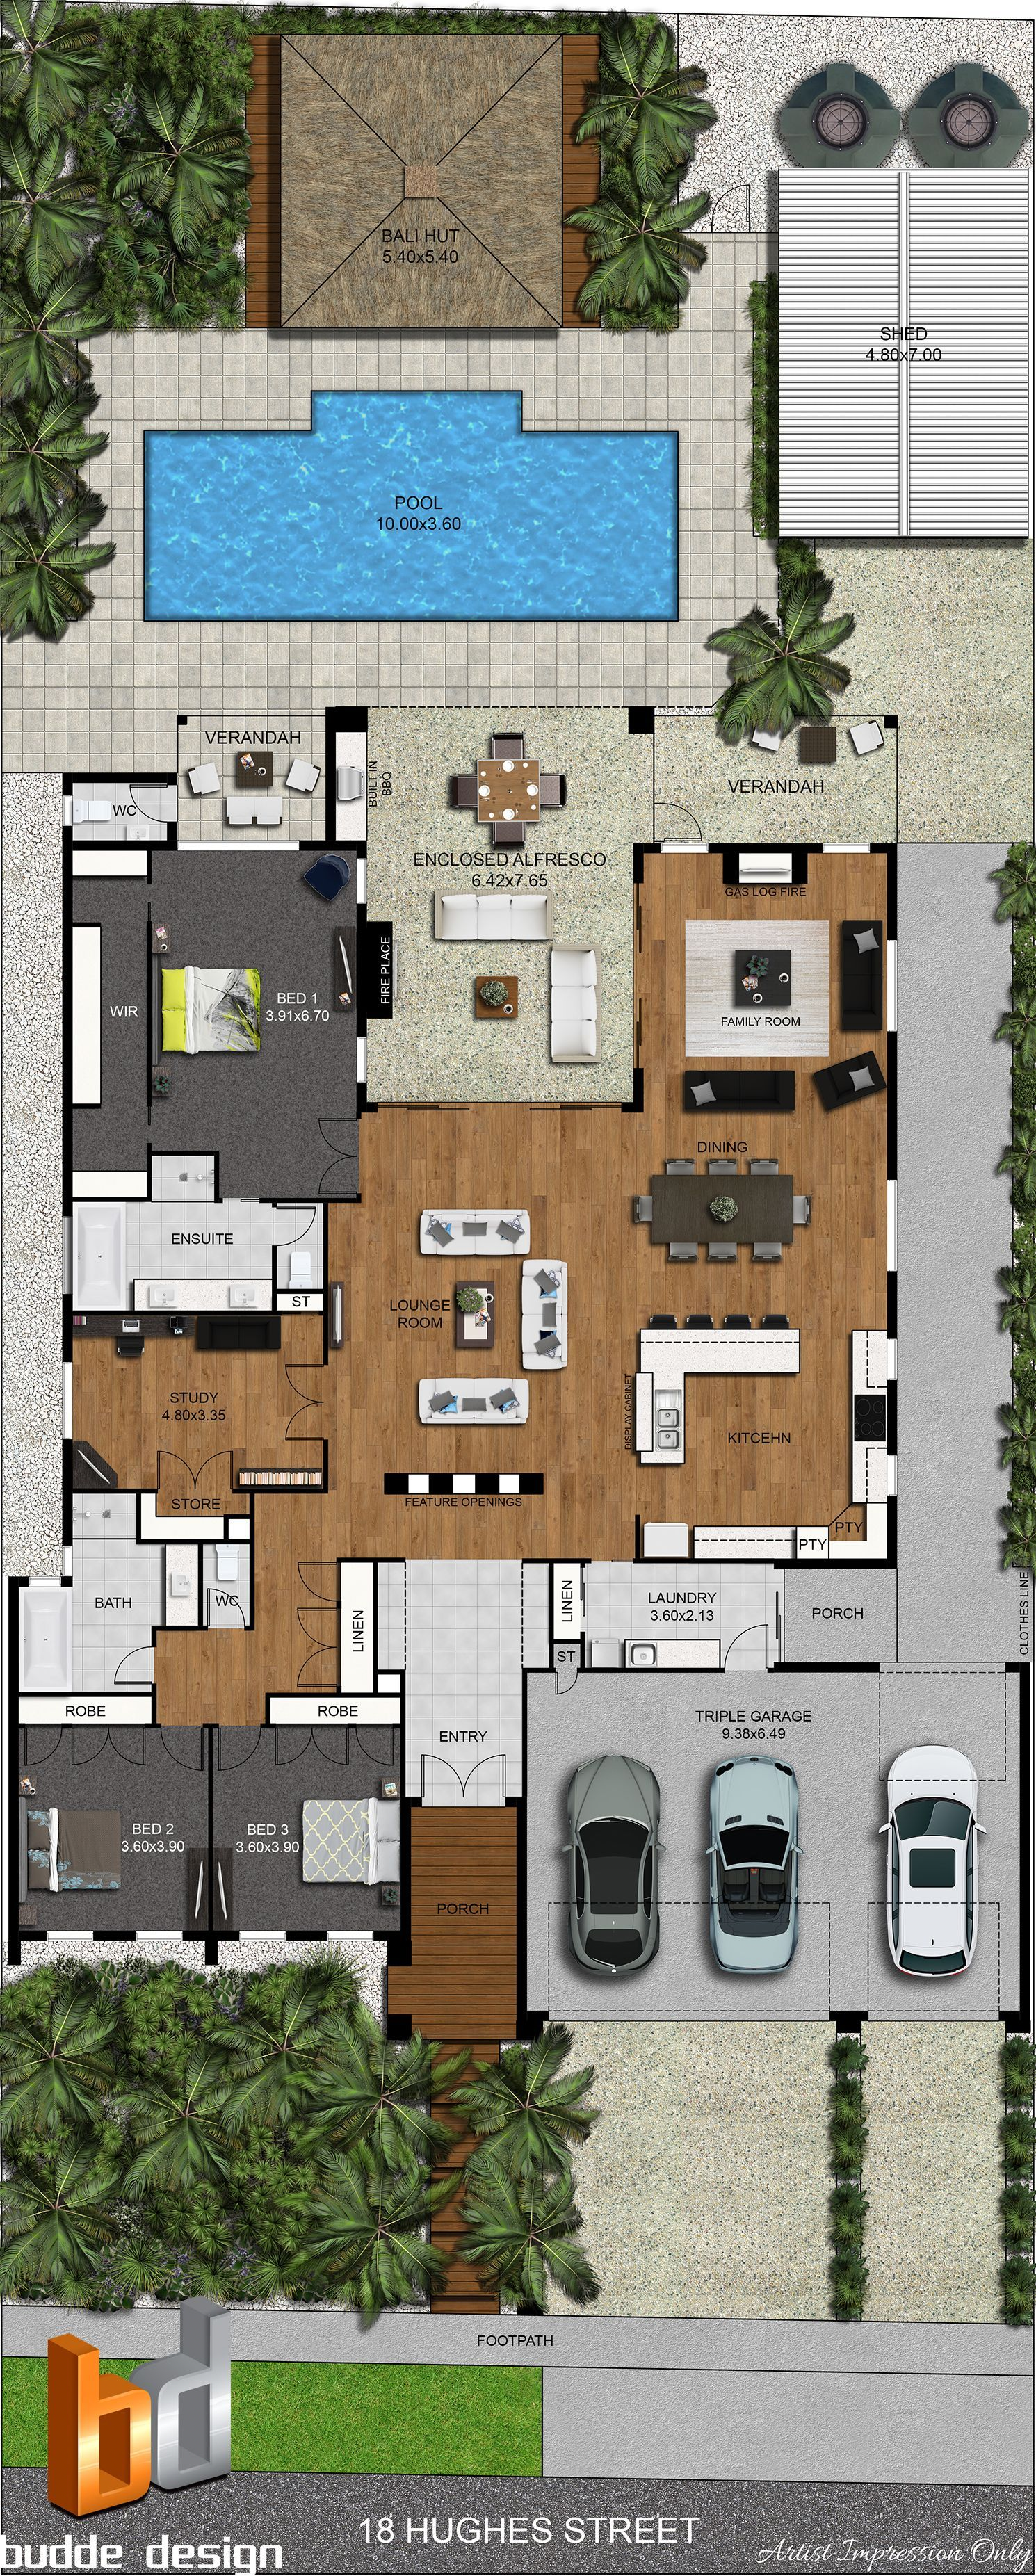 2d Colour Floor Plan And 2d Colour Site Plan Image Used For Real